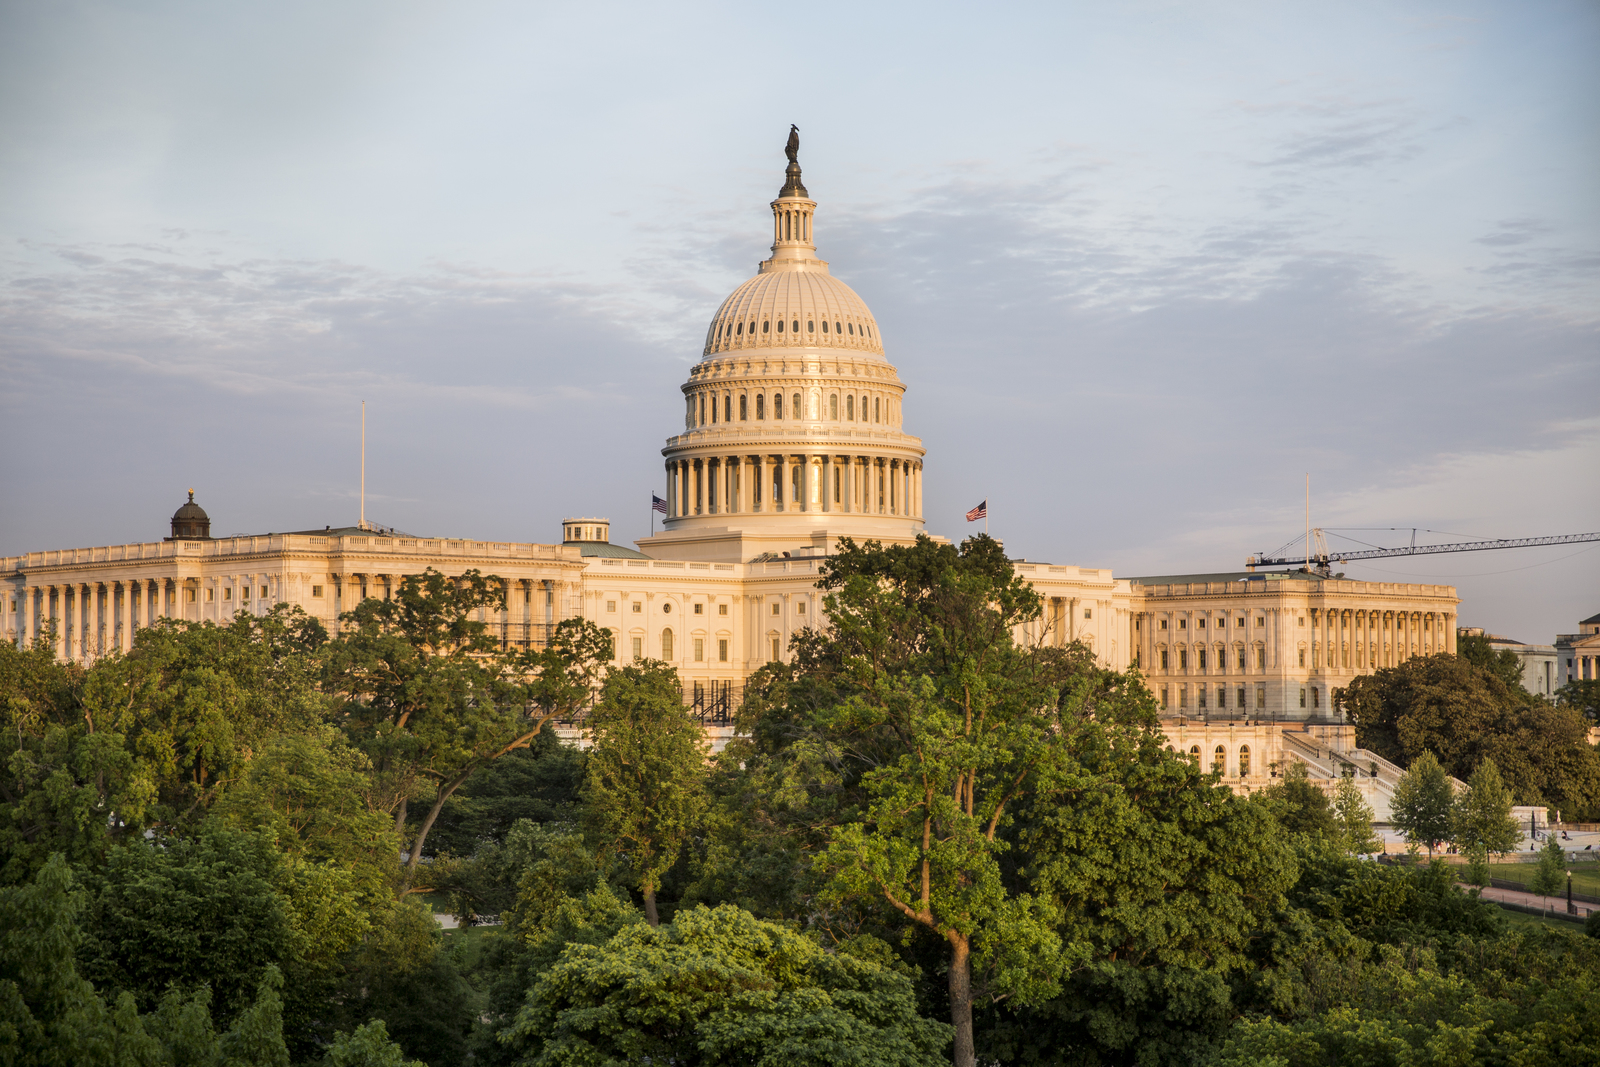 The United States Capitol in Washington, D.C. Photo © Devan King/The Nature Conservancy